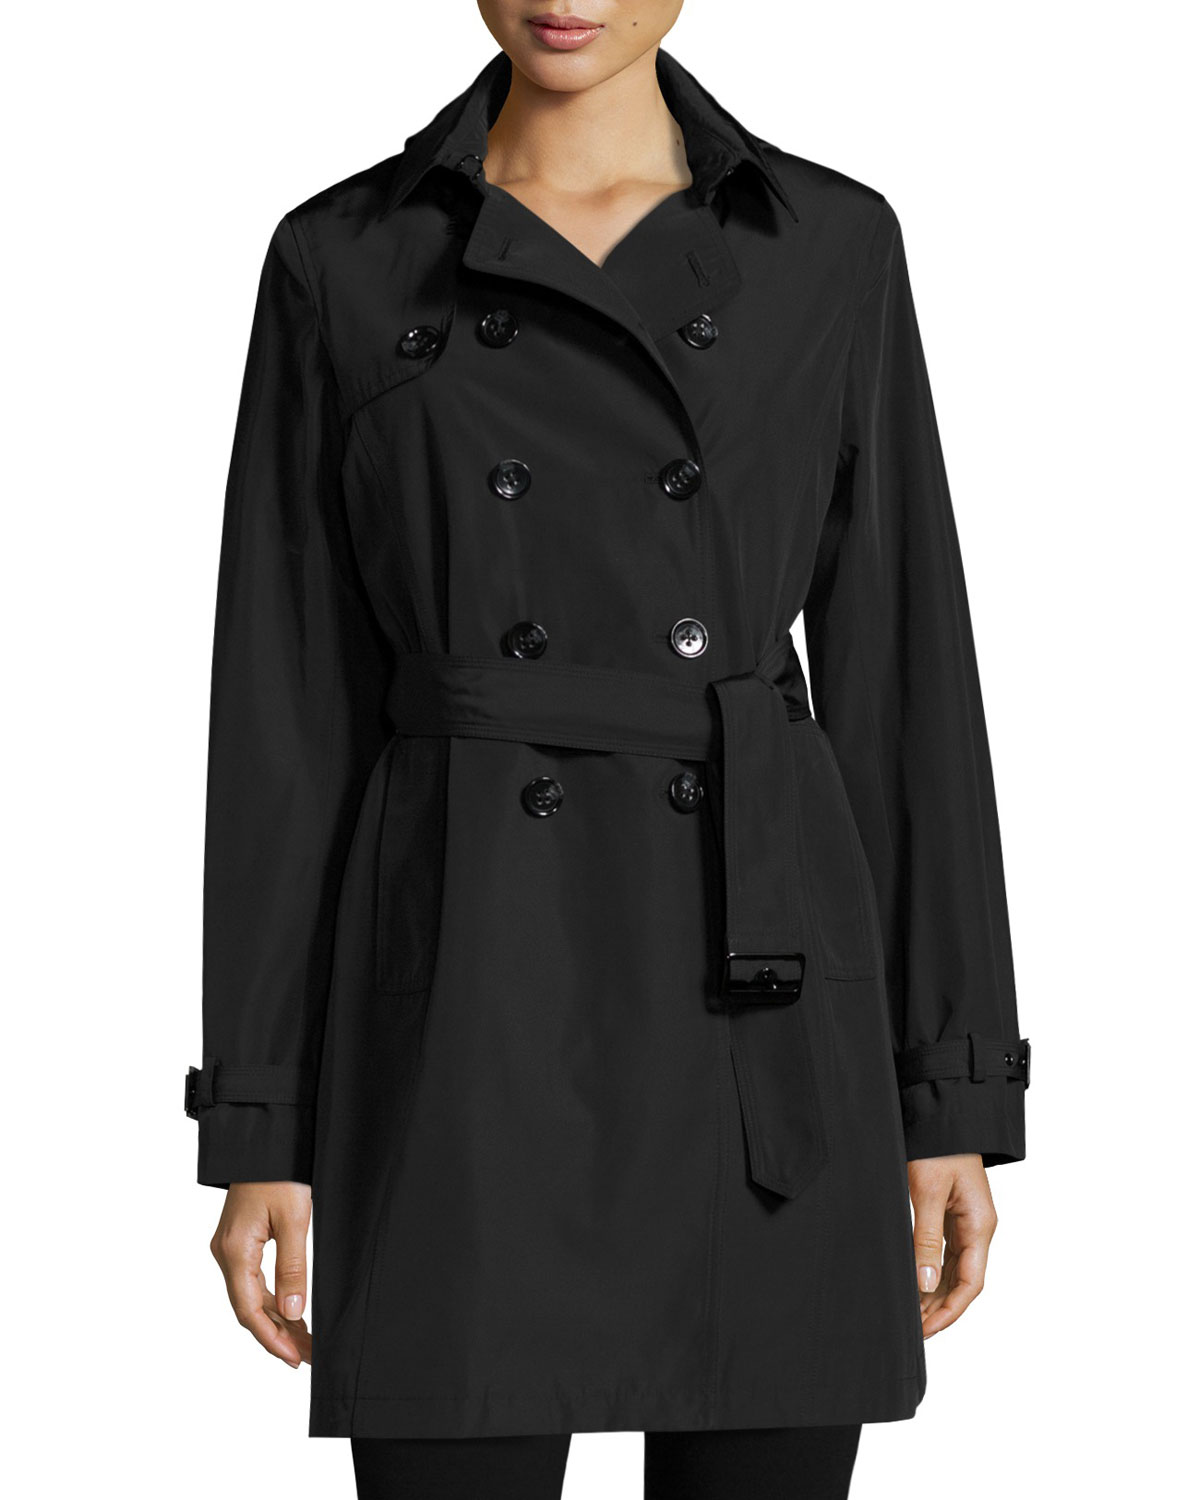 JANE POST Belted Tech-Fabric Trenchcoat in Brown